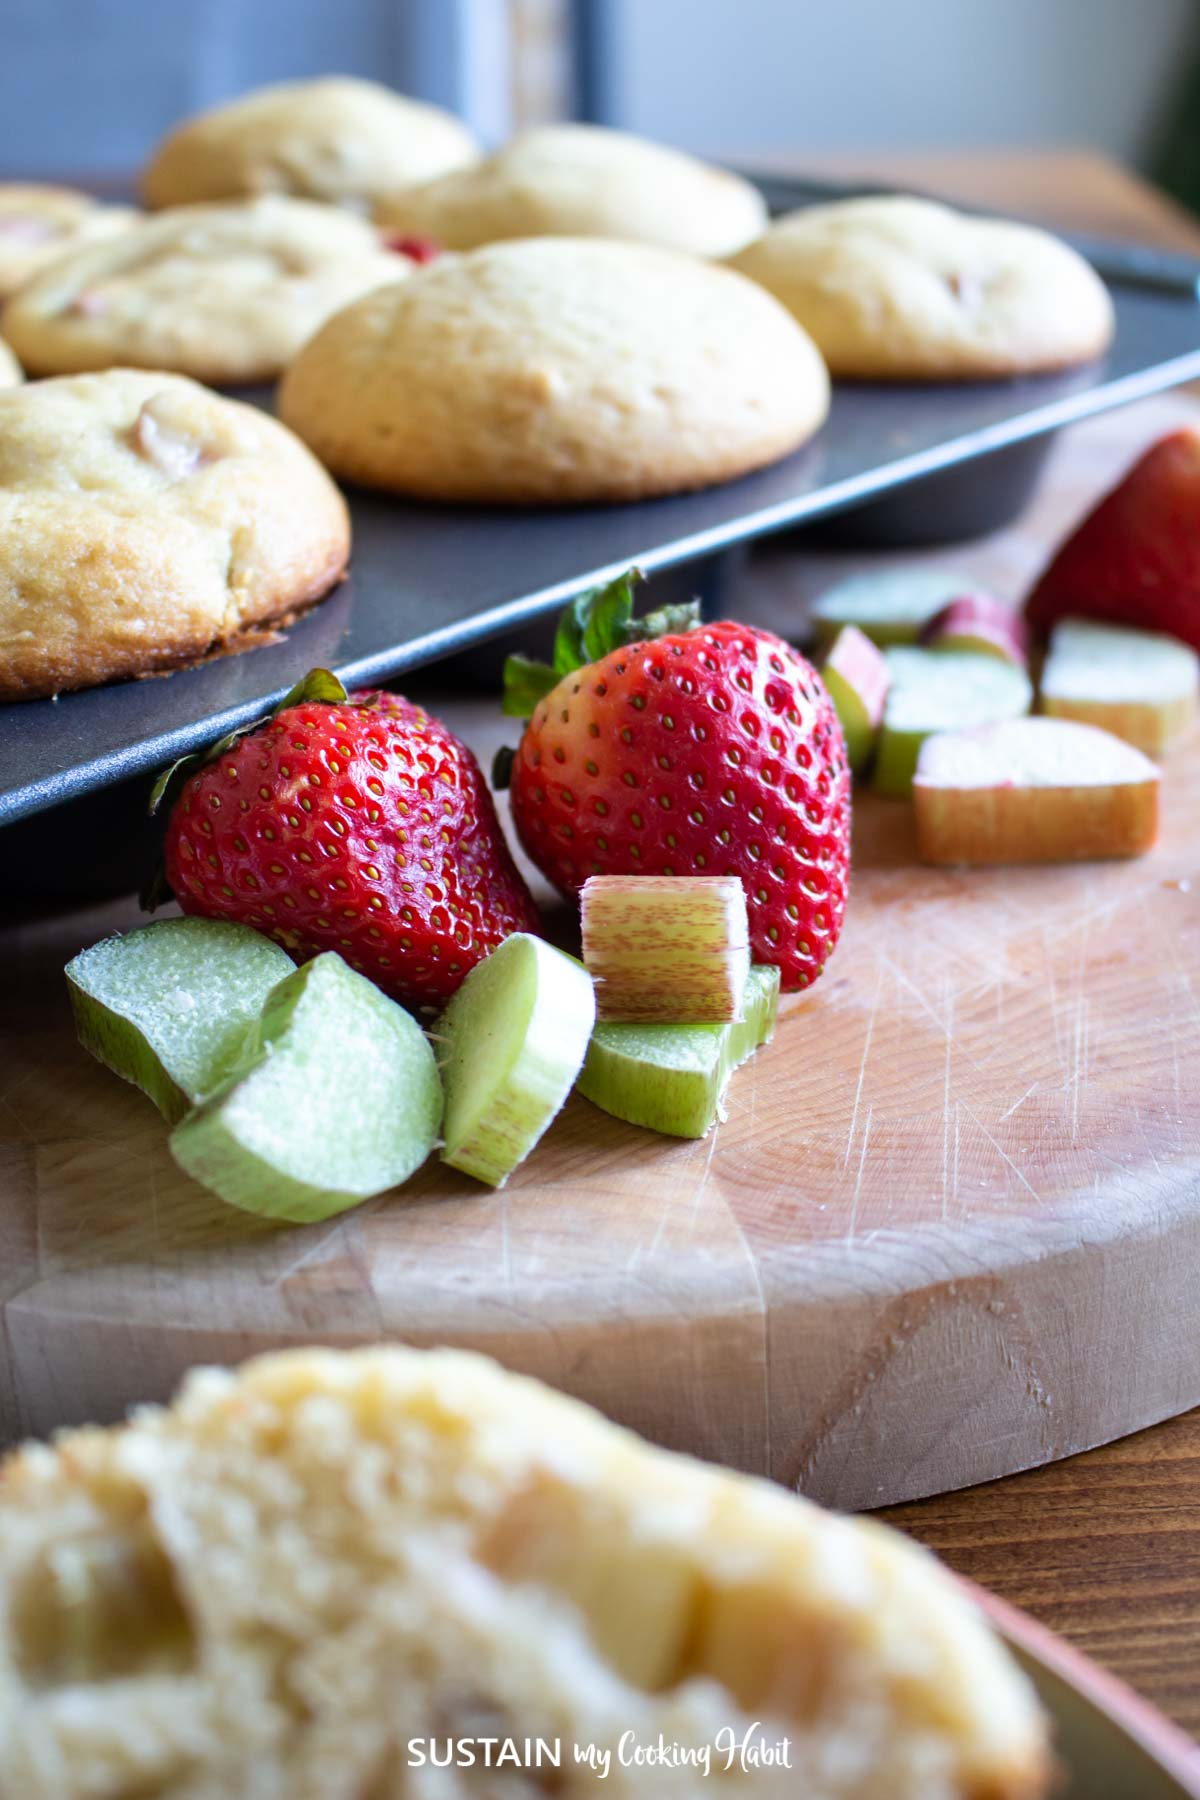 close up image of strawberries and cut rhubarb in front of freshly baked muffins